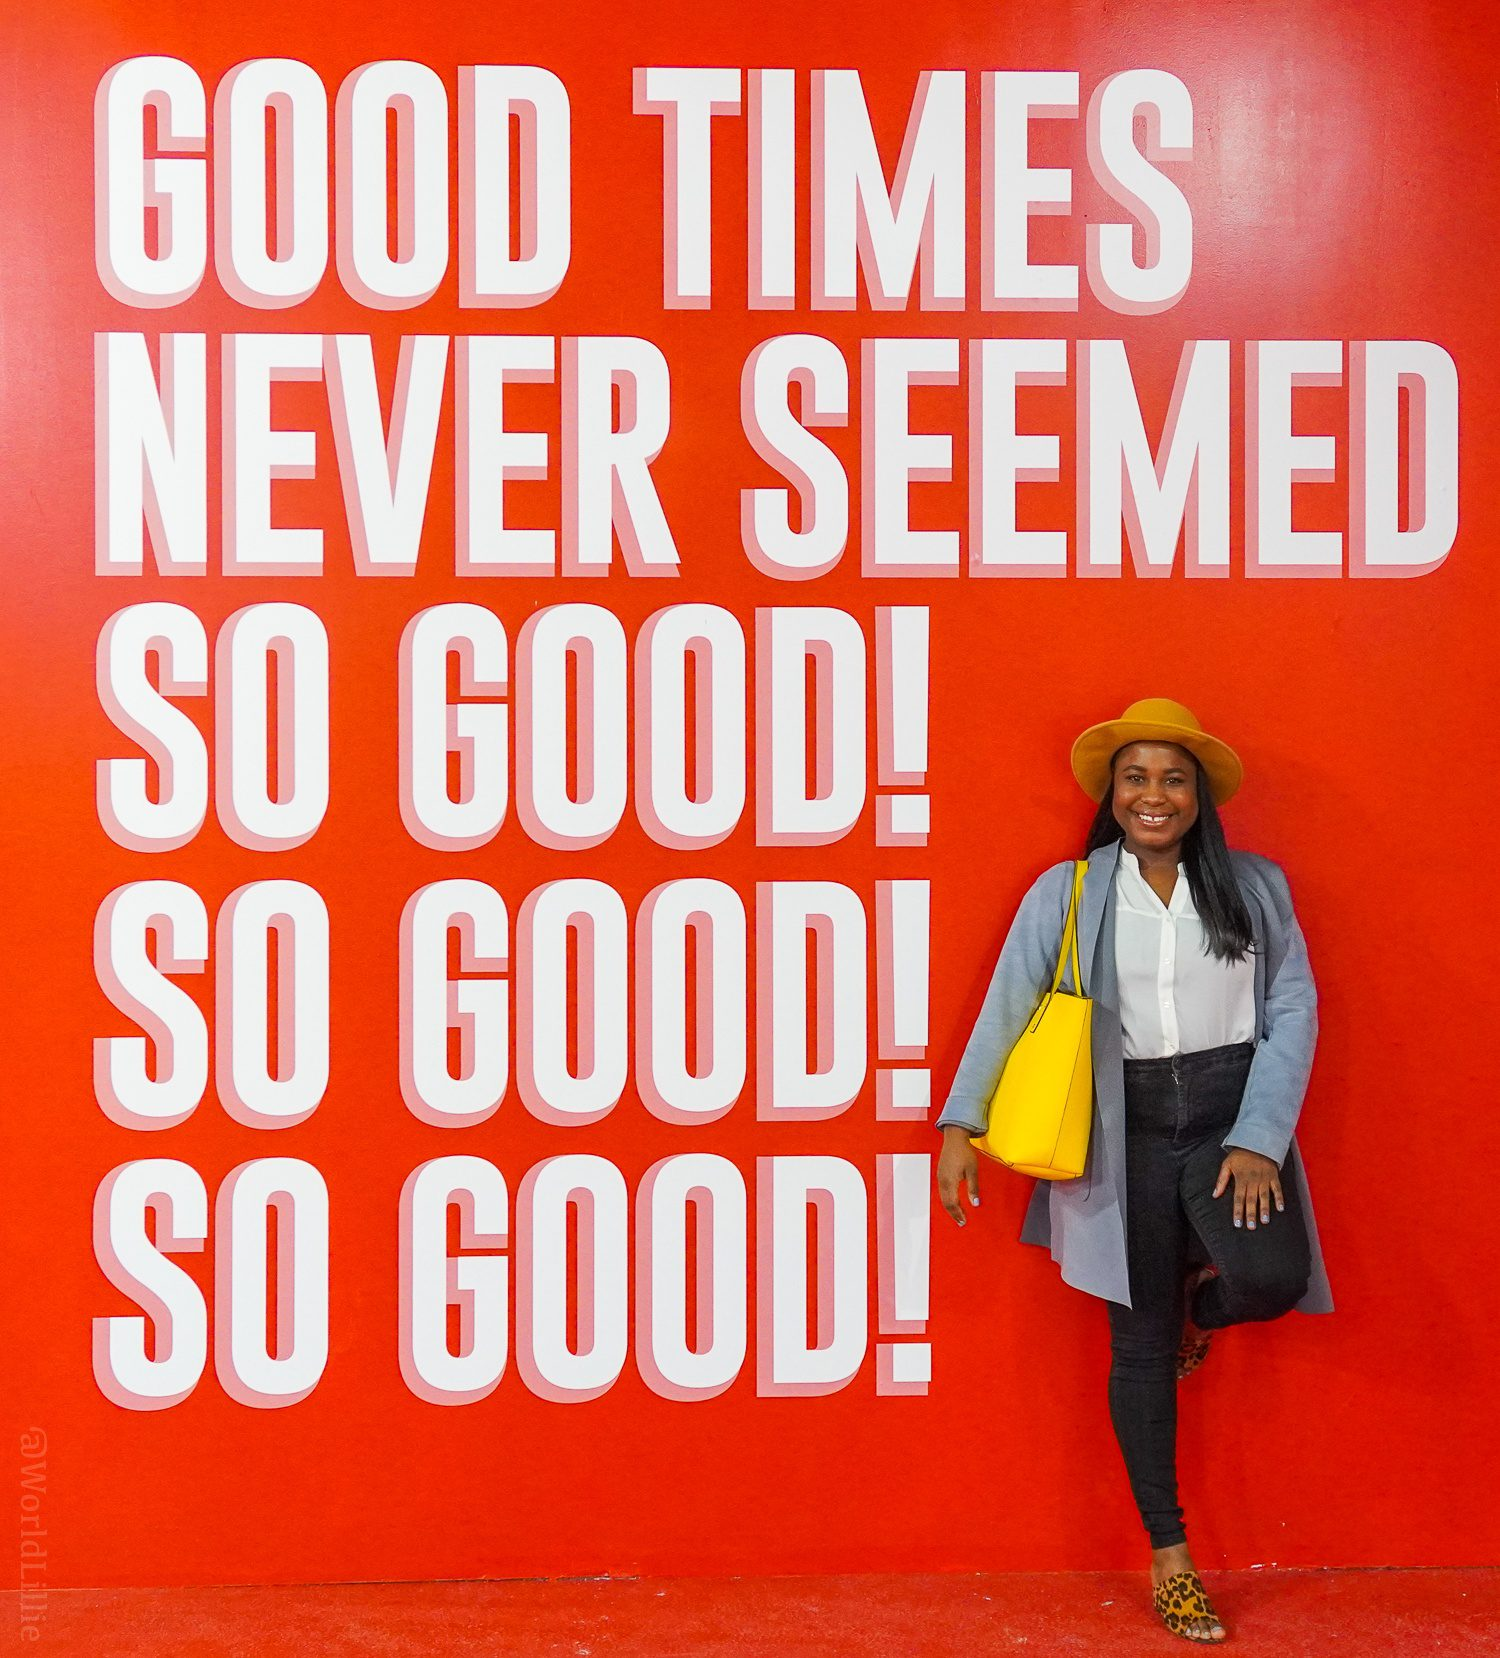 Good times never seemed so good wall sign at Happy Place Boston